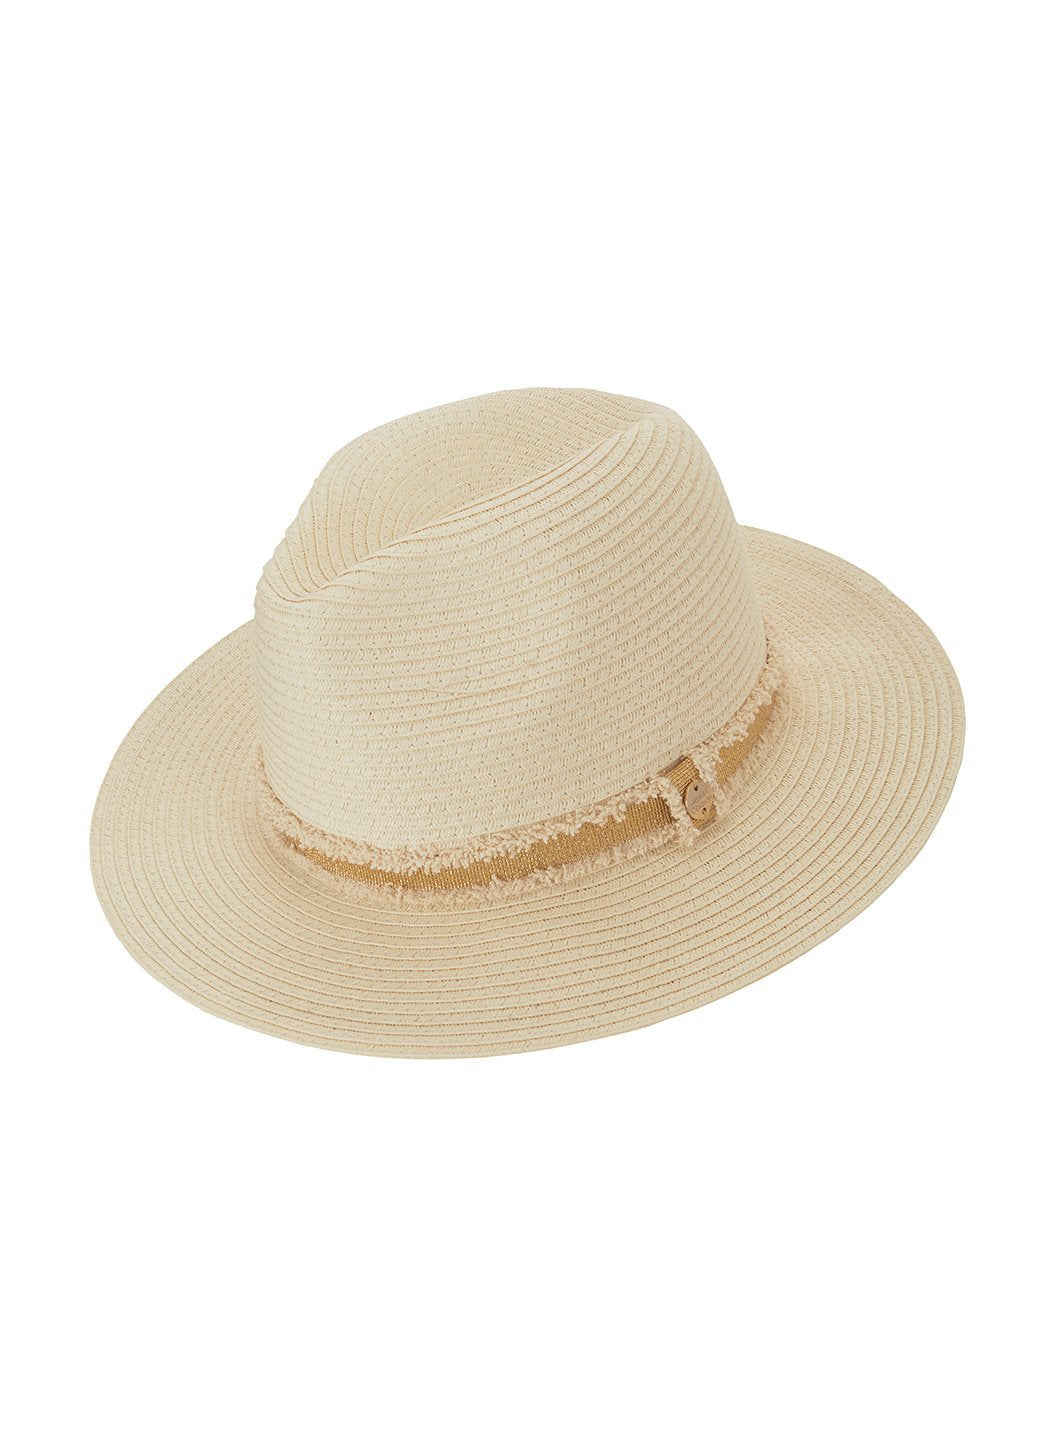 fedora hat cream